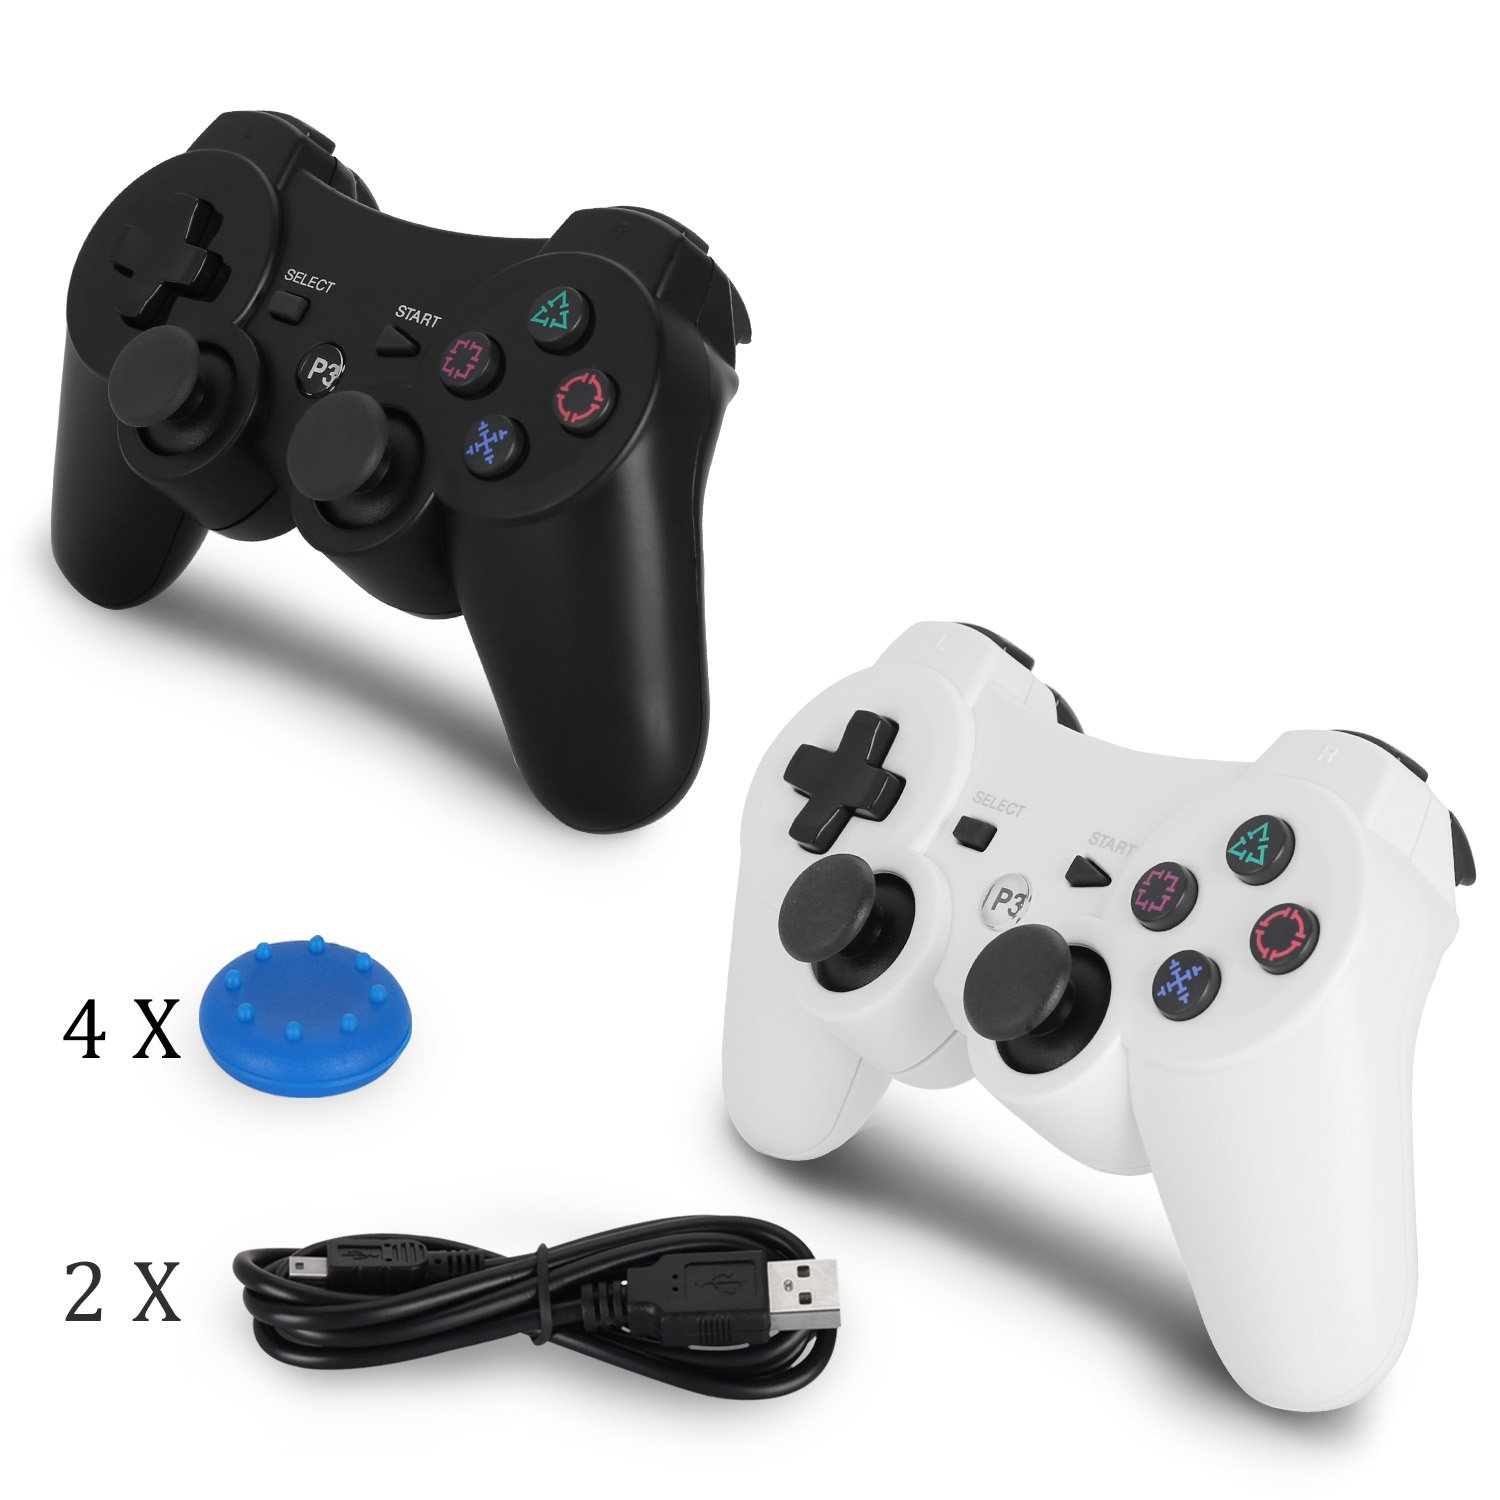 PS3 Controller Wireless 2 Pack - Dualshock 3 Games Remote for Playstation 3,Cheap DS3 Joystick with Sixaxis,Mini USB Charger Cable(White+Black)